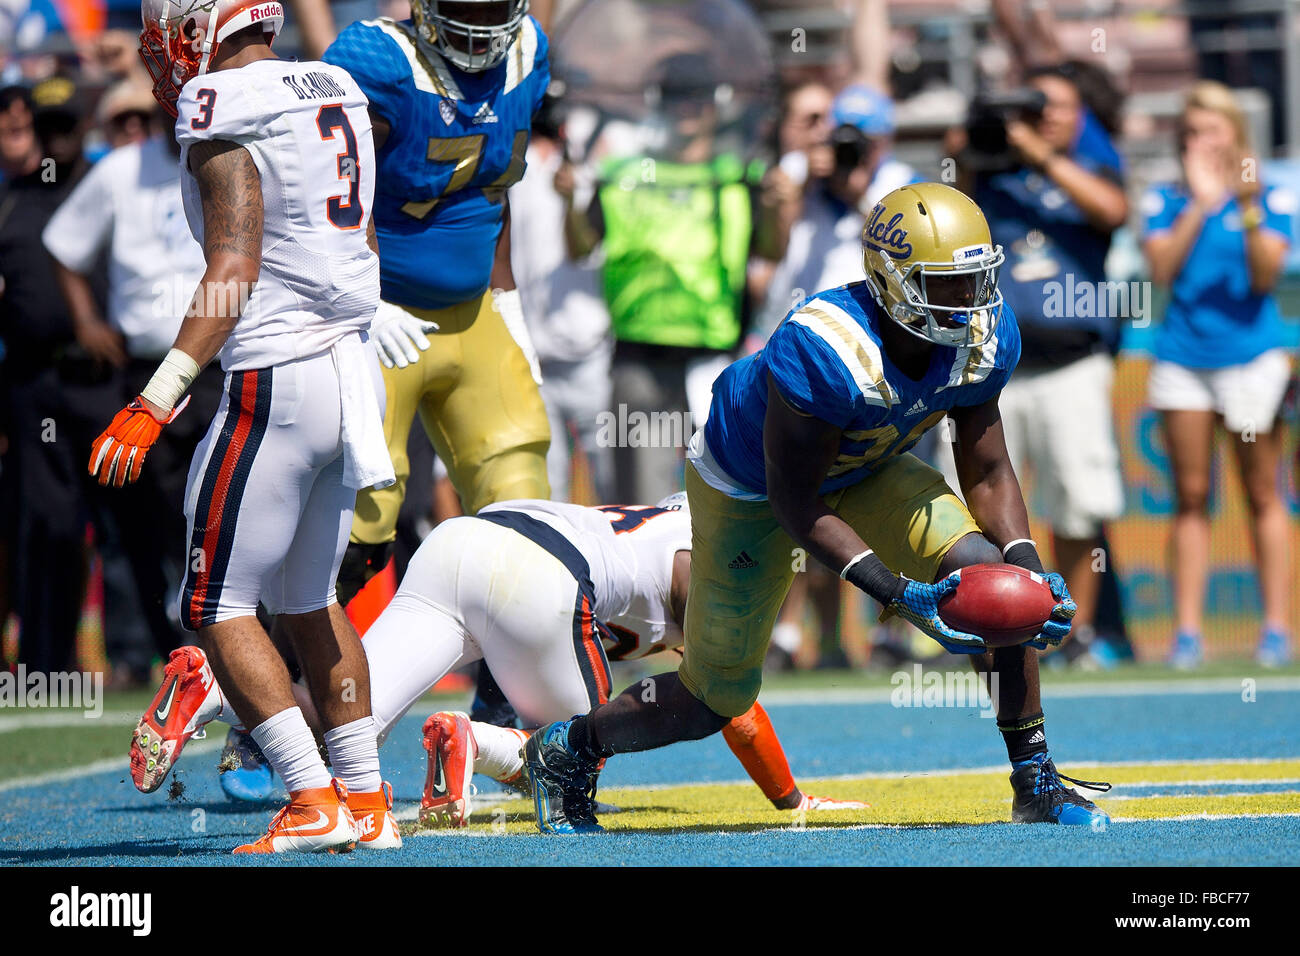 Linebacker Myles Jack #30 of the UCLA Bruins scores a touchdown against the Virginia Cavaliers during the third - Stock Image